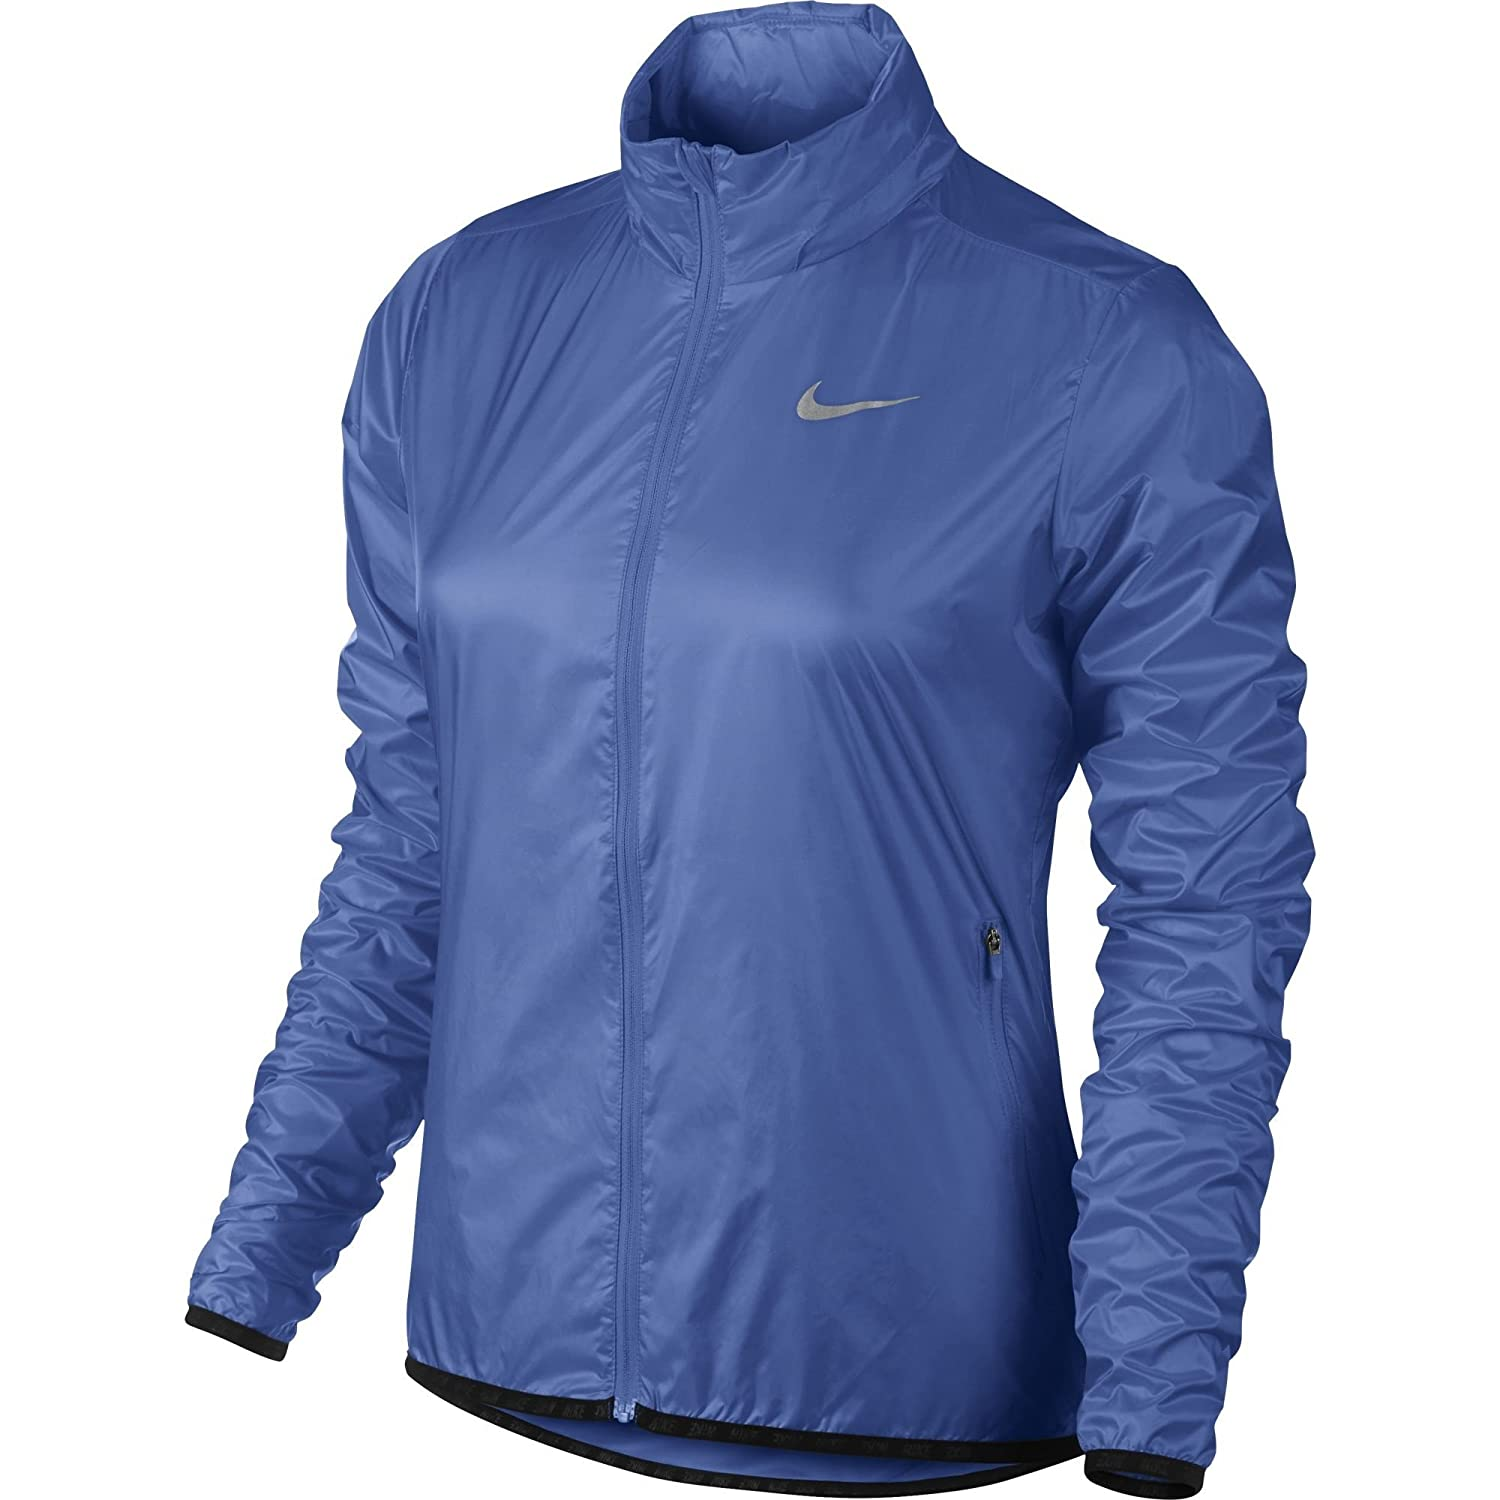 Nike women's convertible running jacket